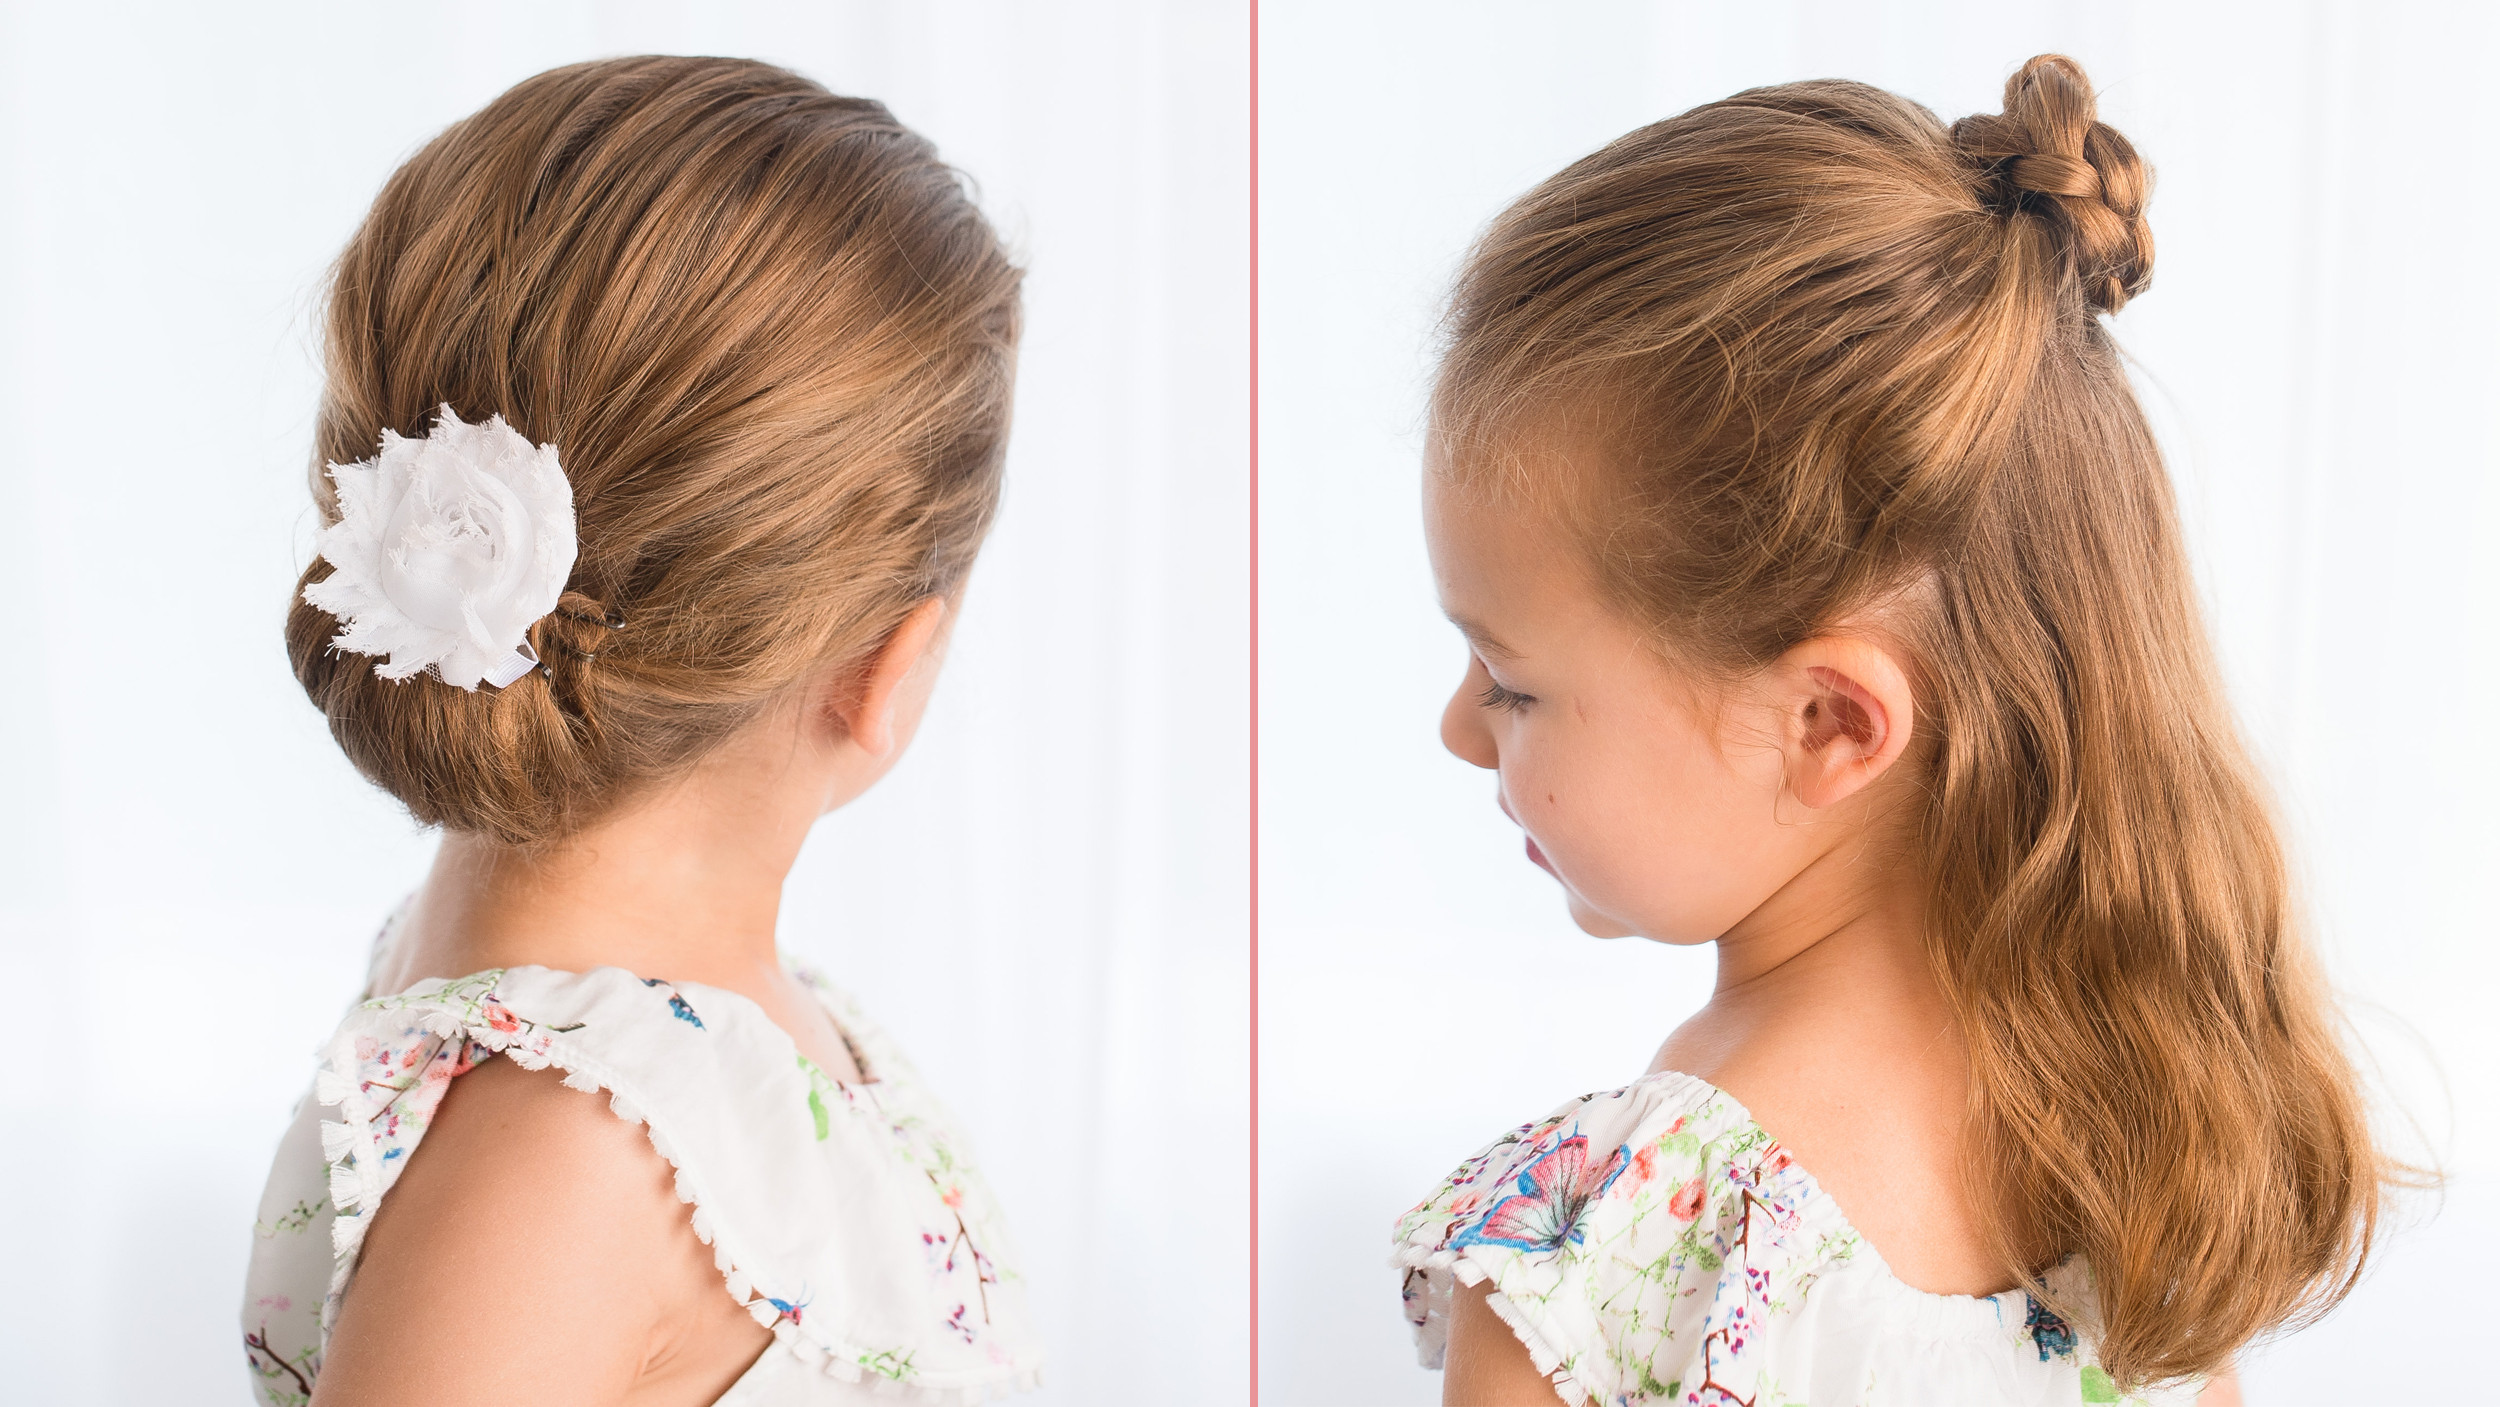 Best ideas about Kid Hairstyles Girls . Save or Pin Easy hairstyles for girls that you can create in minutes Now.